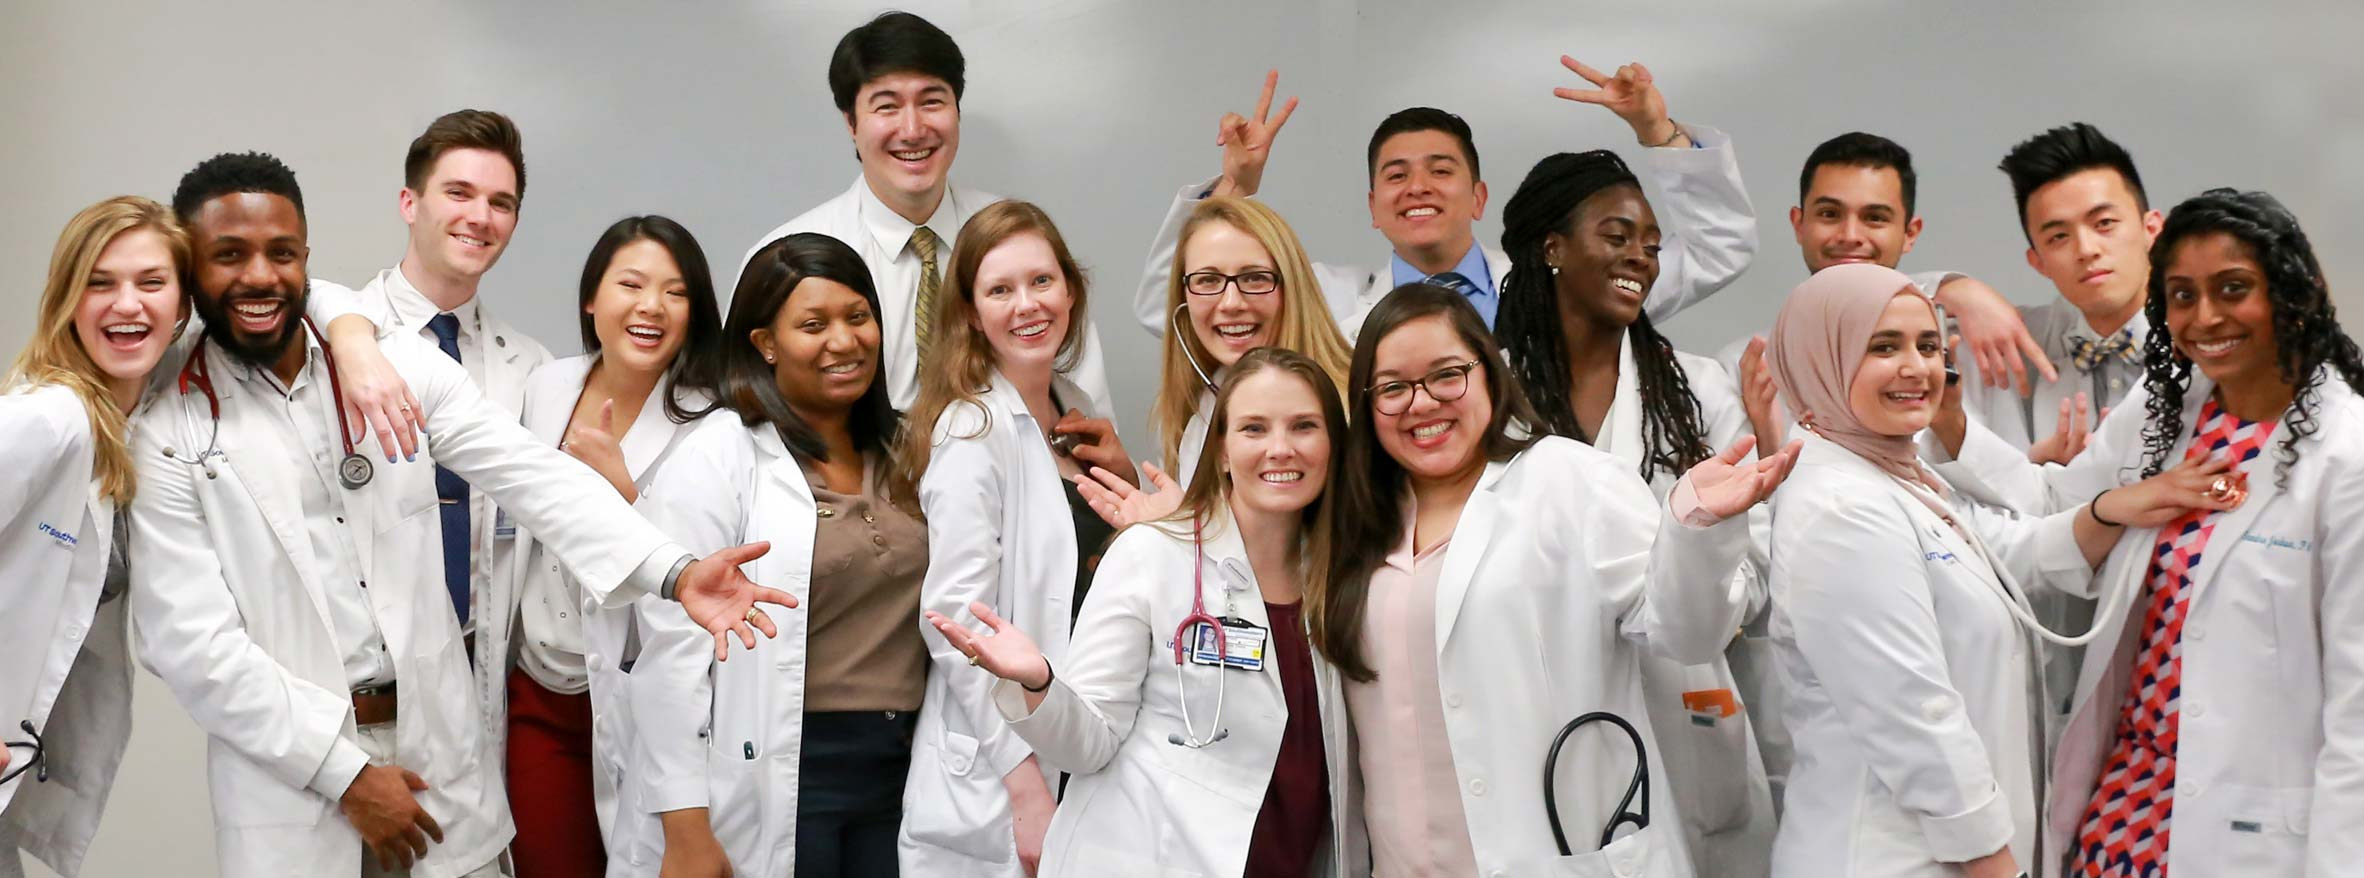 A group of 16 students in white coats